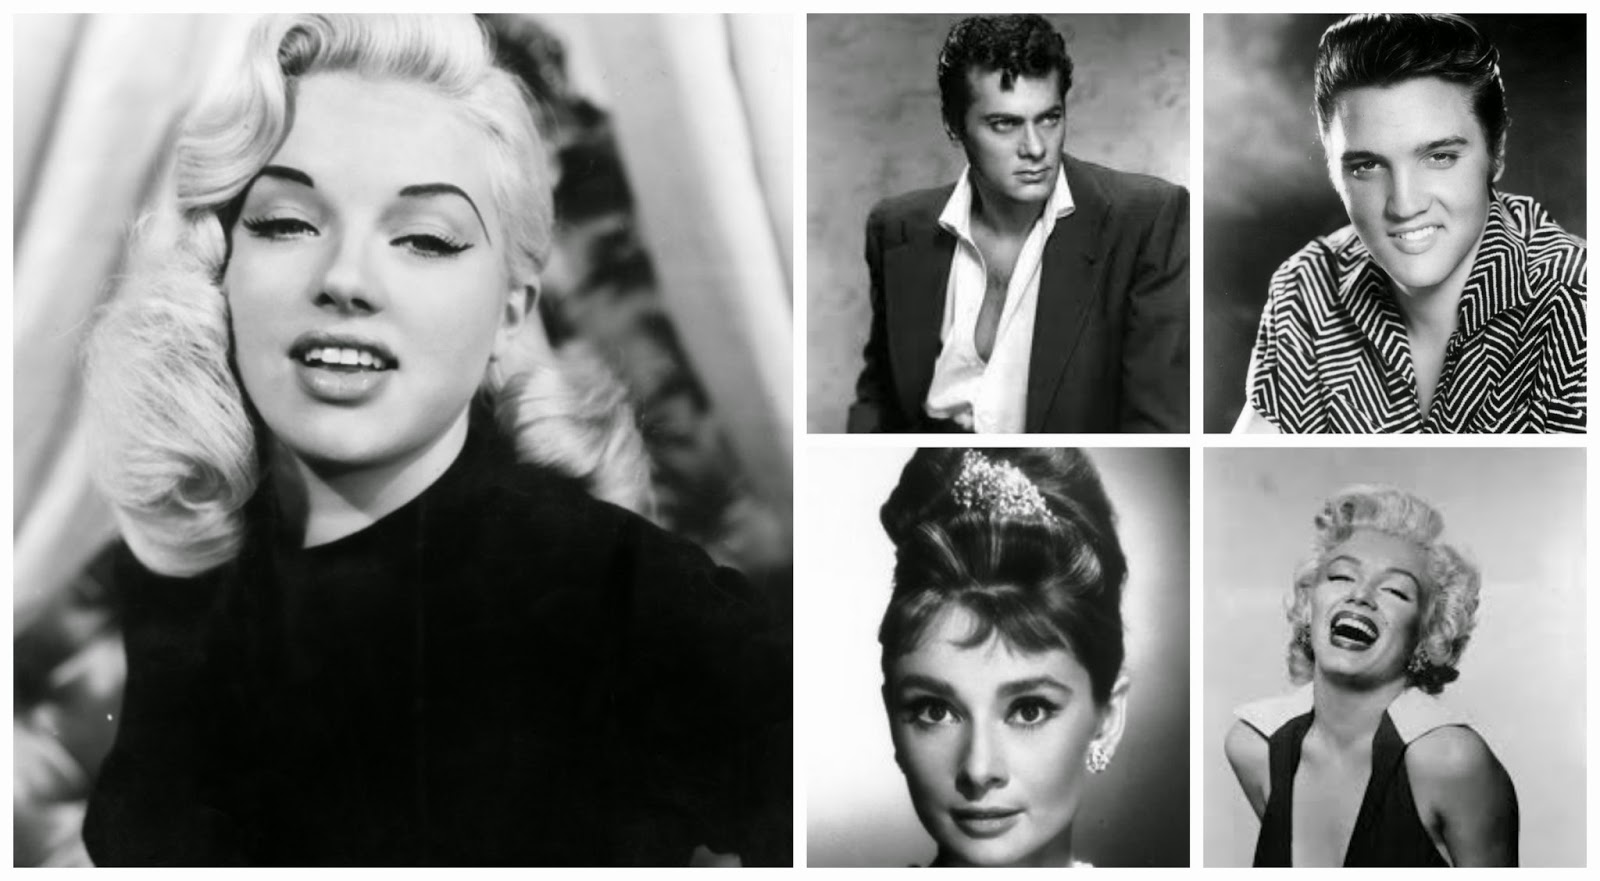 My Top 5 1950's Icons